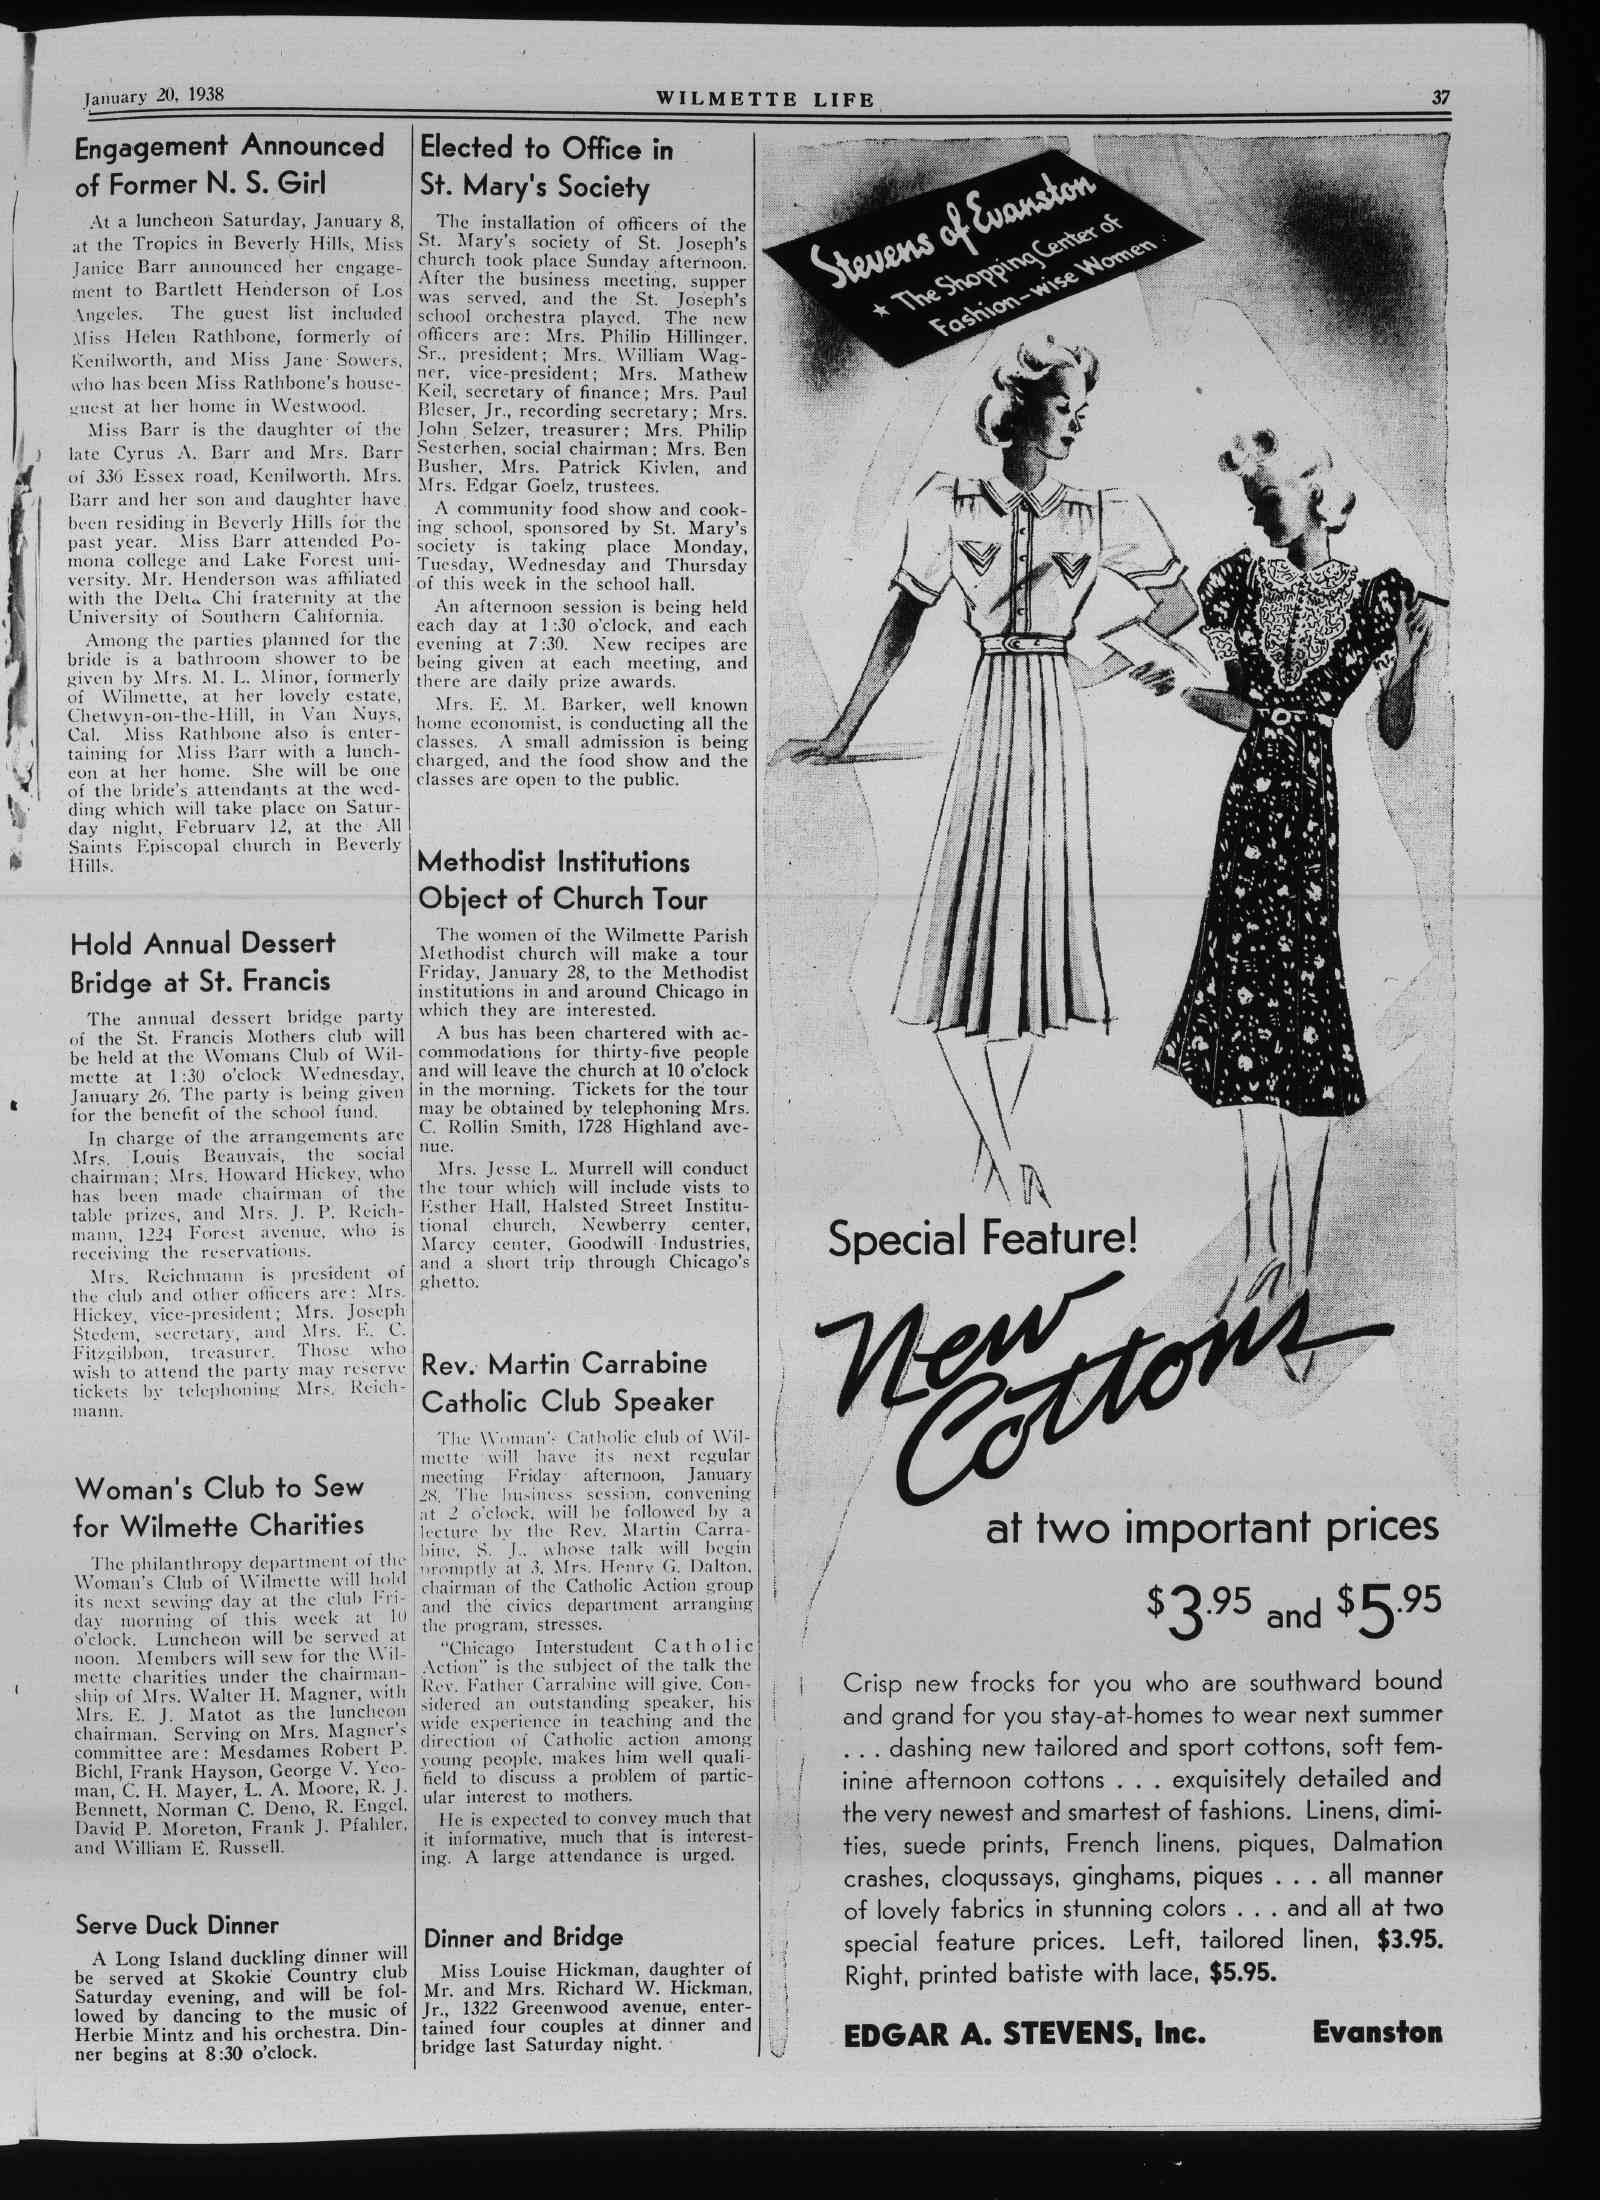 Wilmette Life (Wilmette, Illinois), 20 Jan 1938